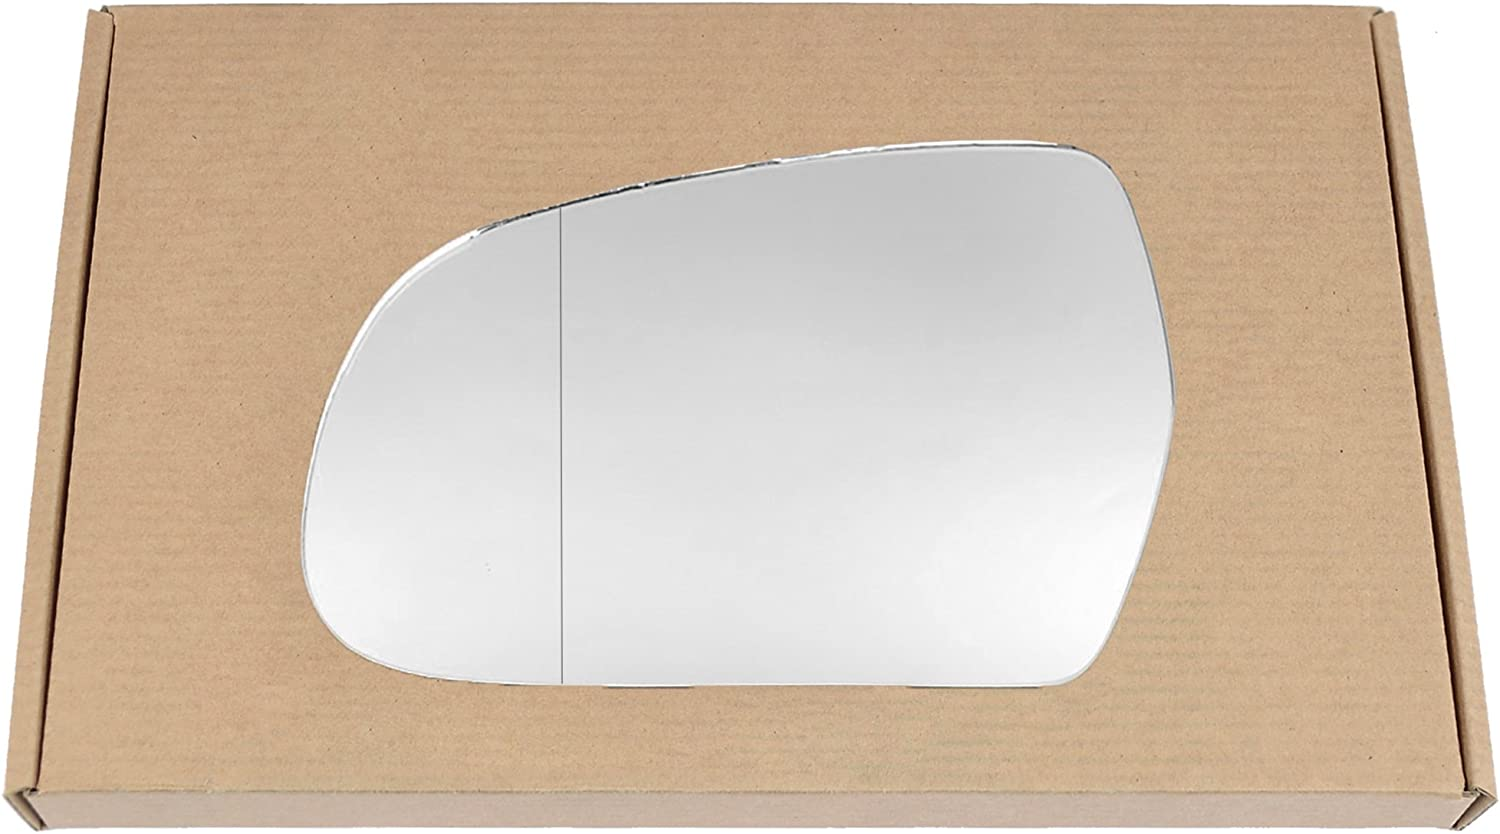 Wide angle Left passegner side Silver Wing mirror glass # AuA5//a02-2015729//590